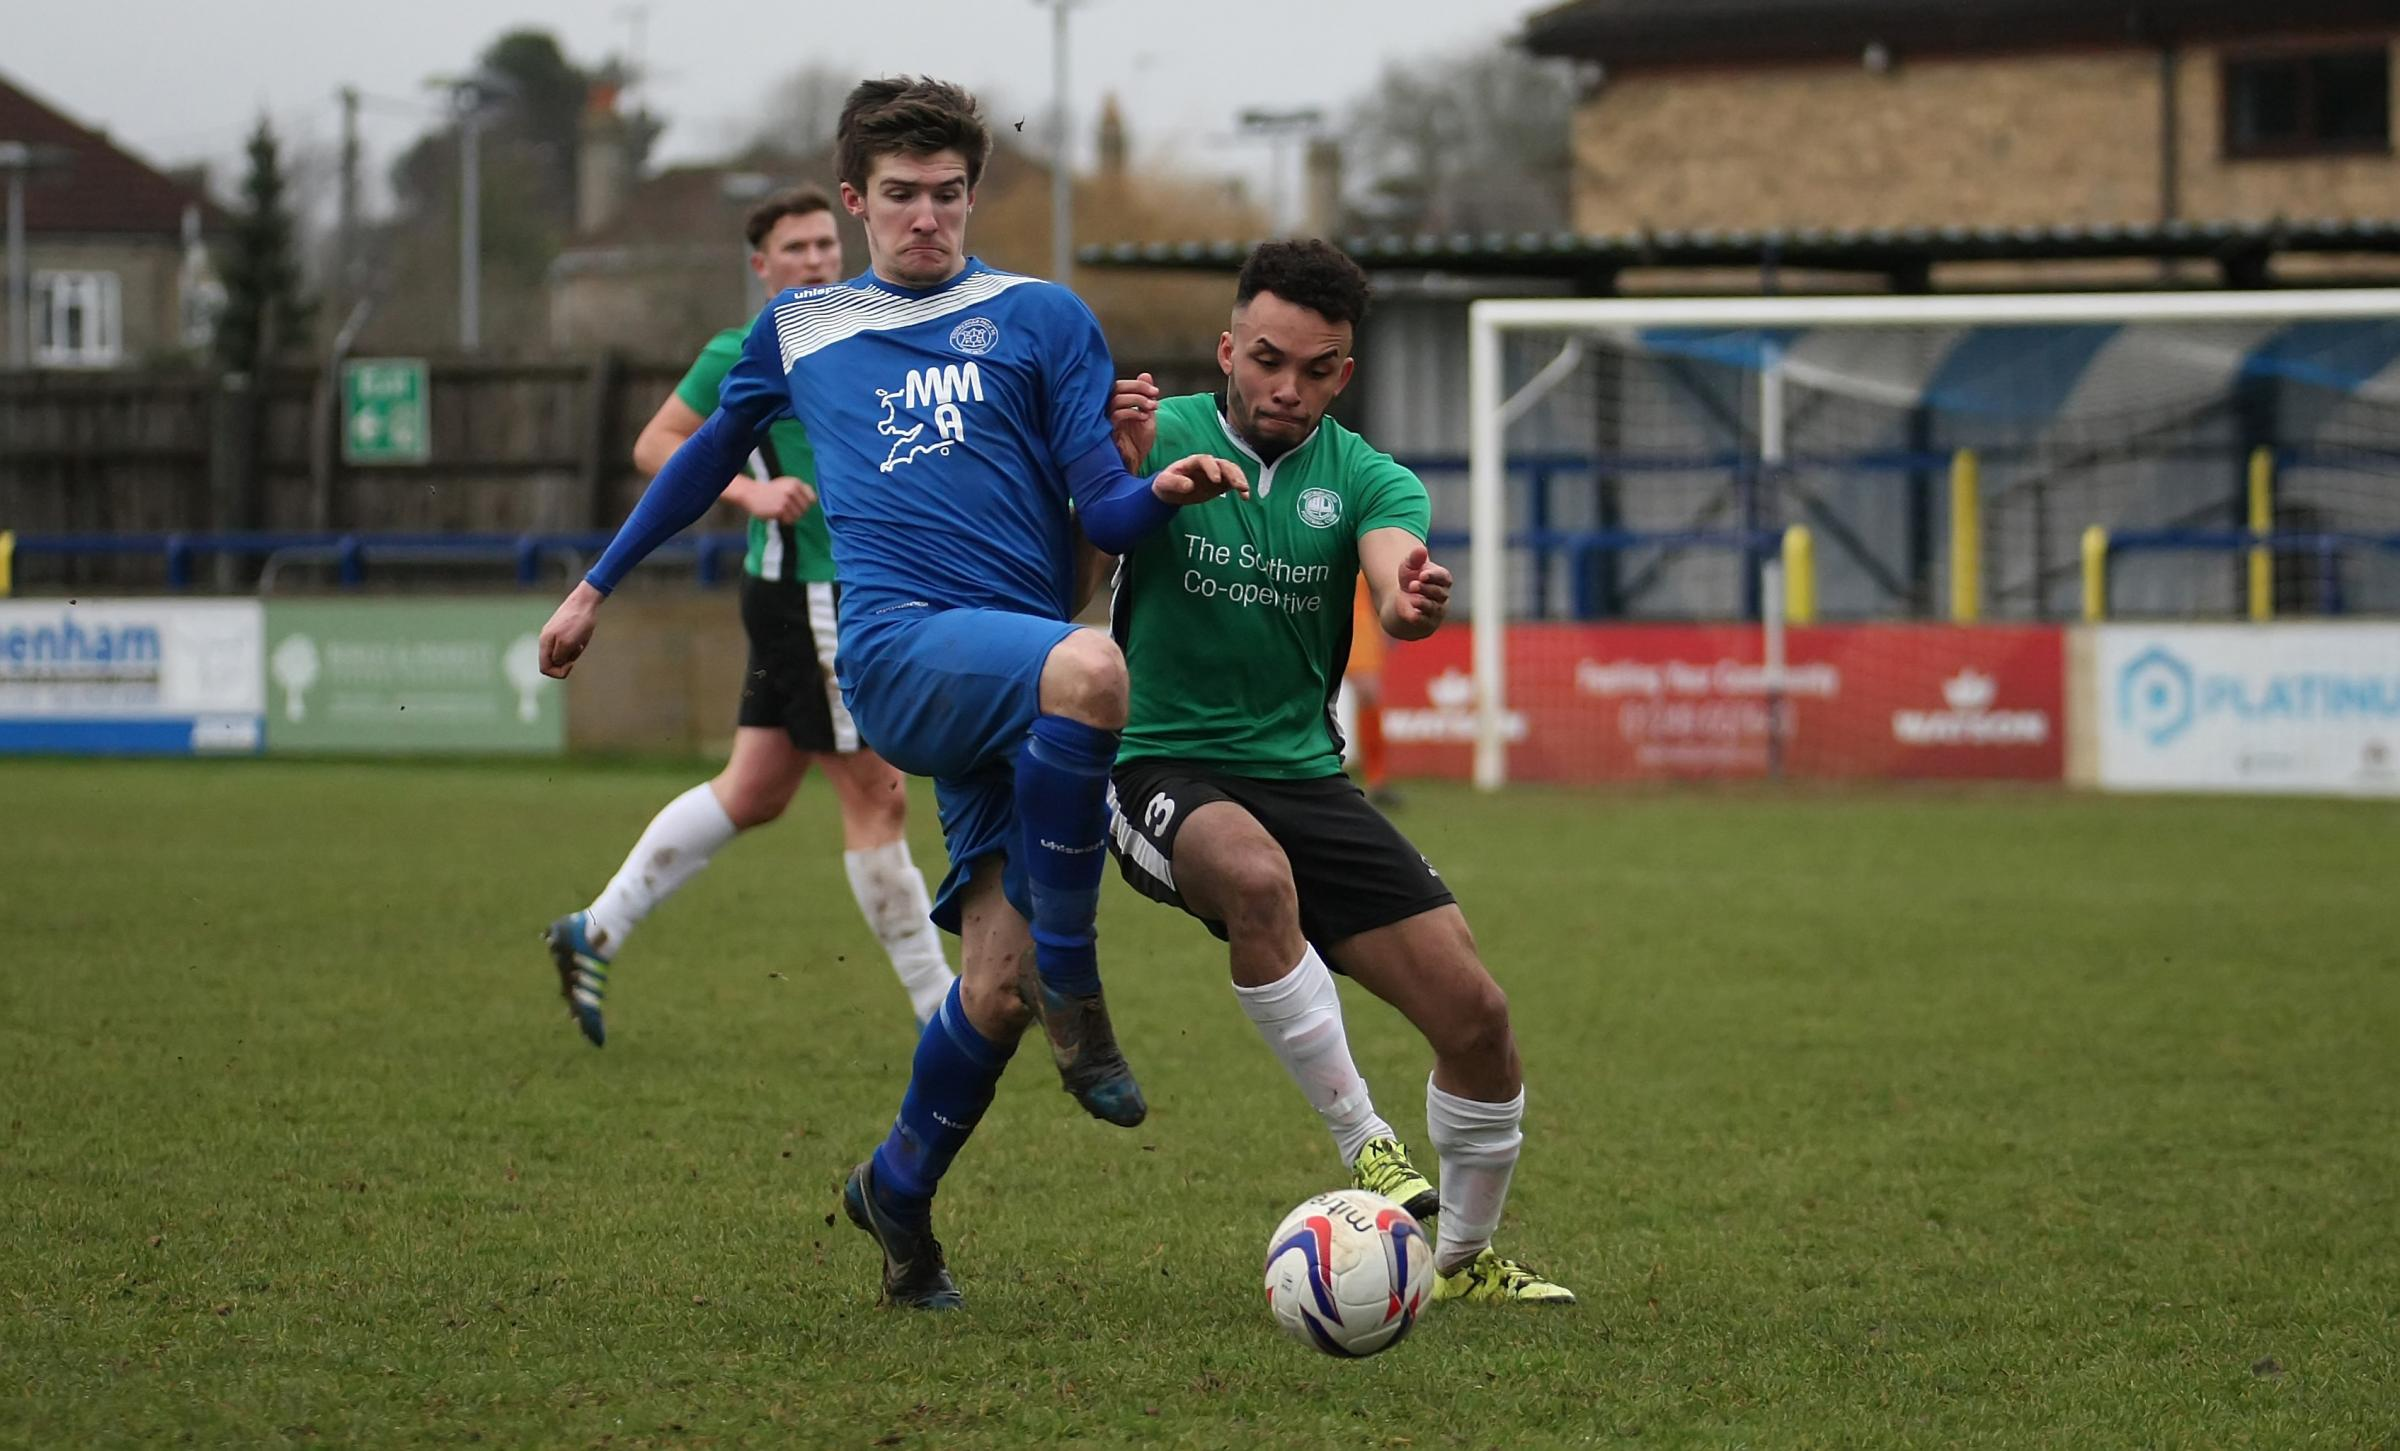 Lewis McCarron notched for Chippenham Park